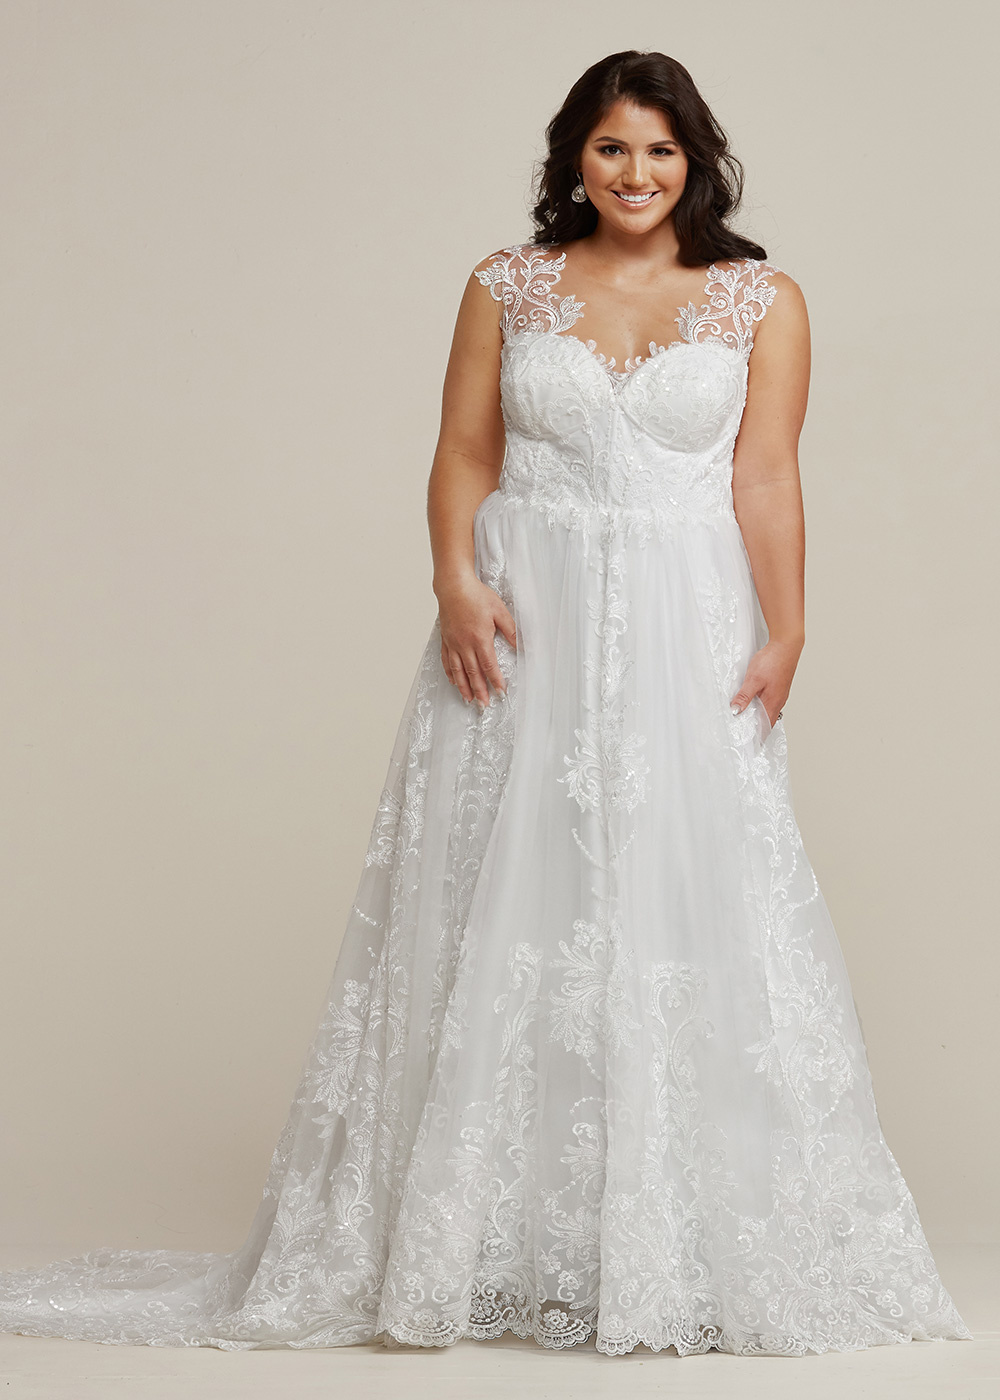 TH-Isabelle TH Wedding Dresses By Ashdon